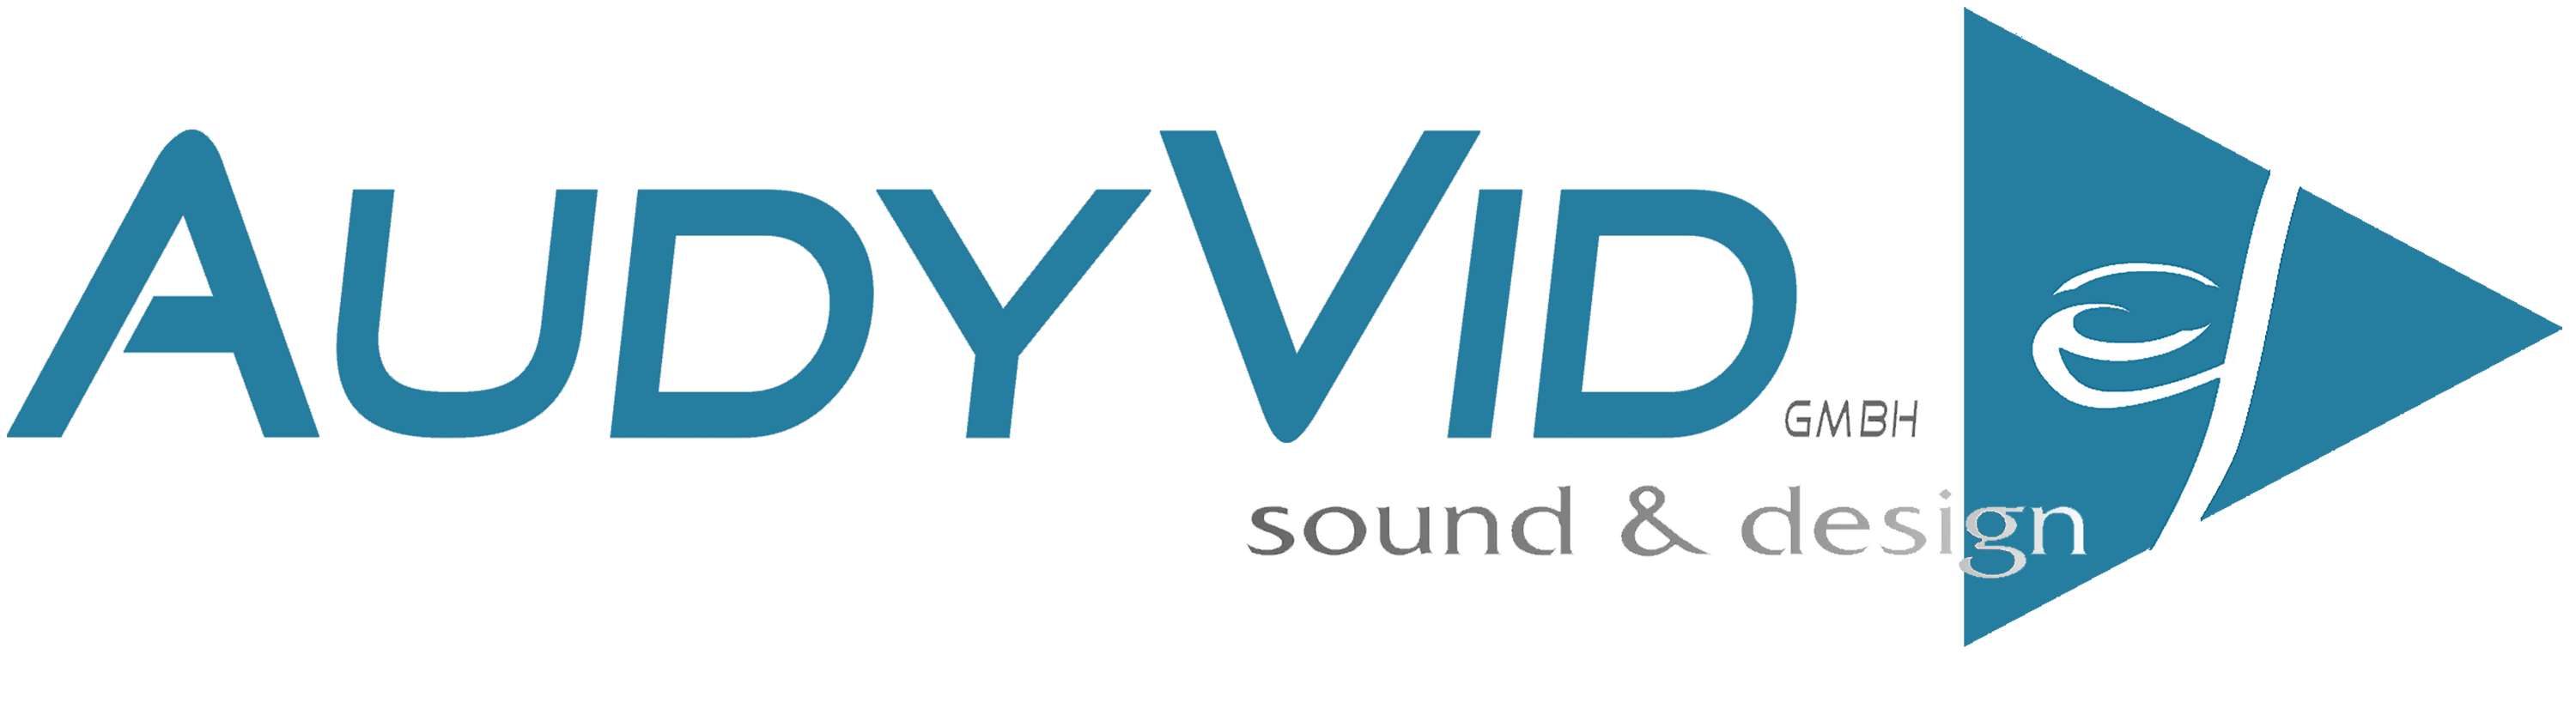 AudyVid GmbH sound & design